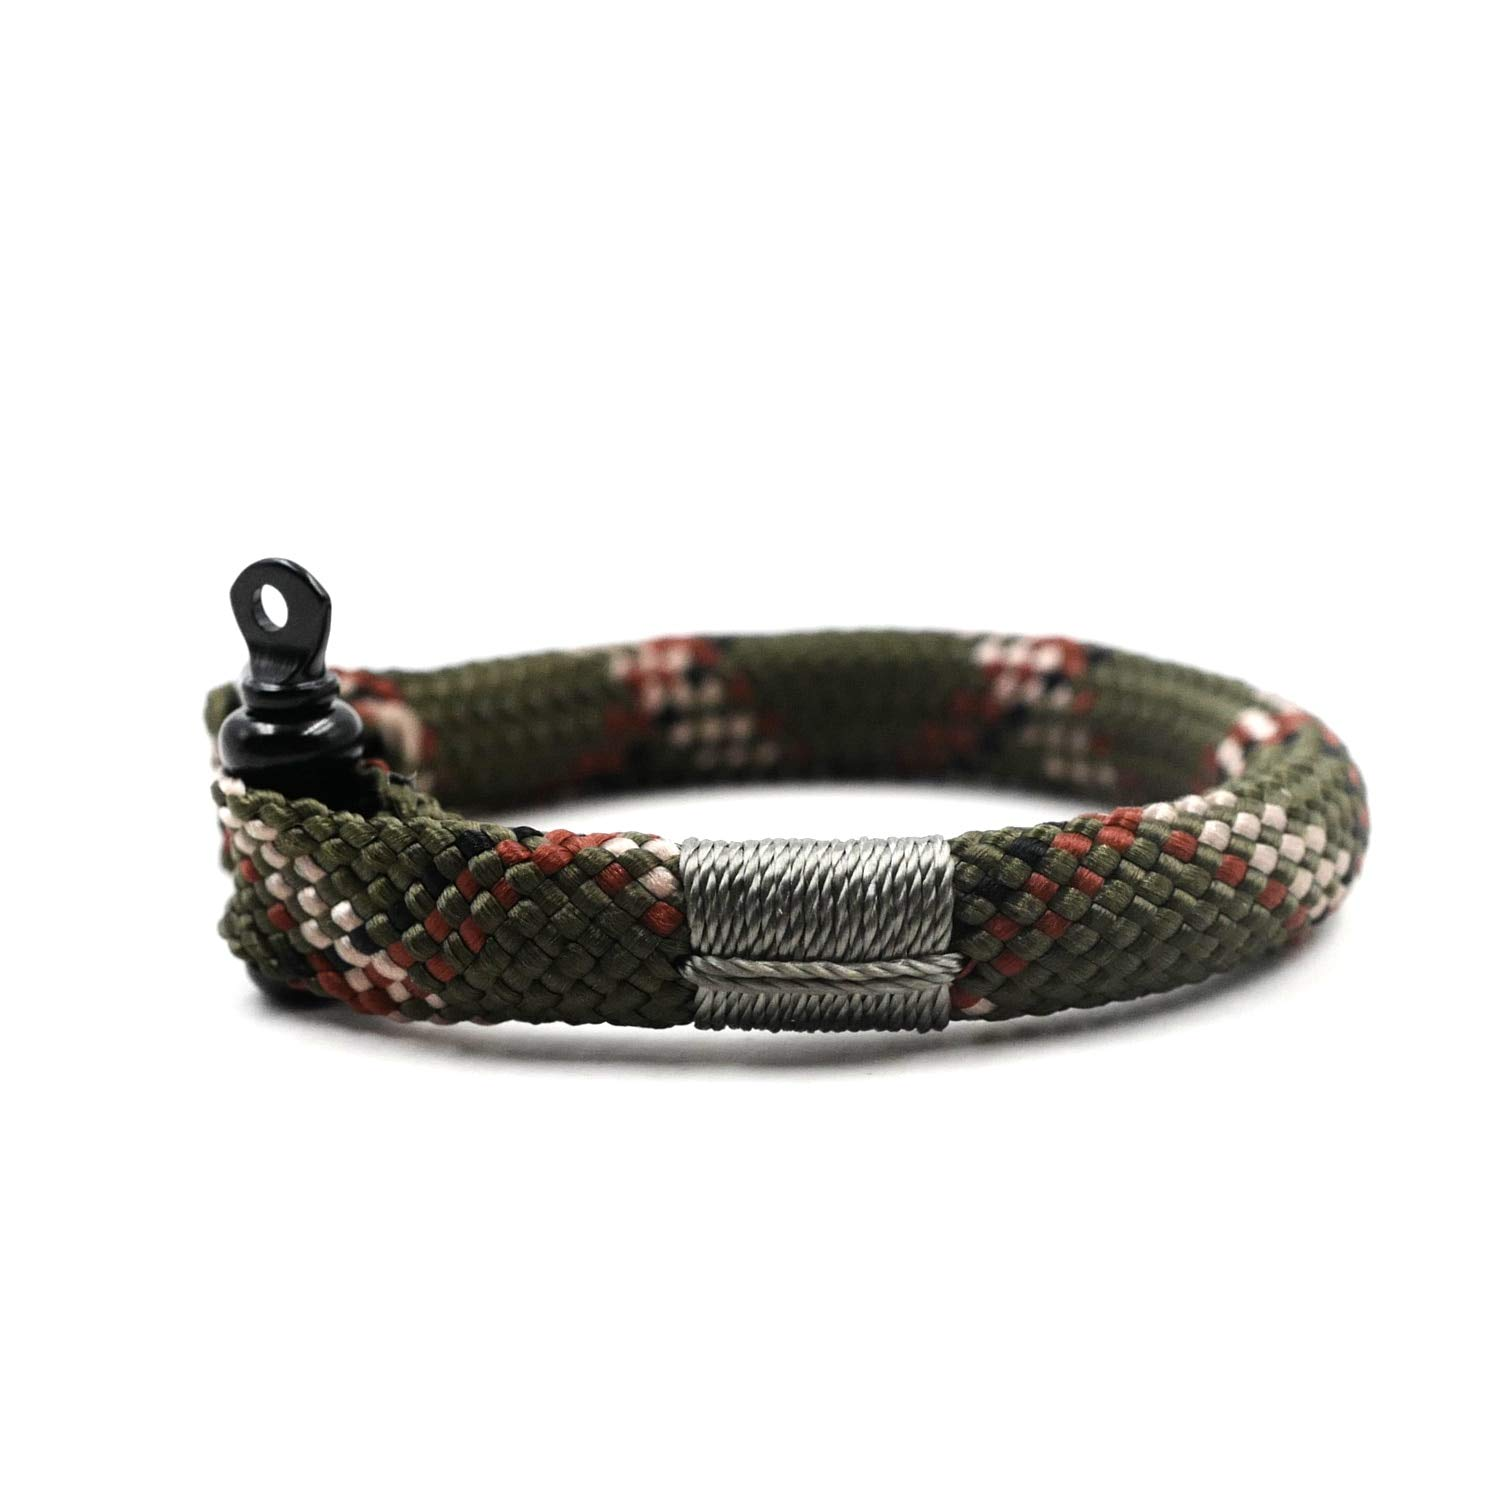 TTHER Nautical Rope Ladder - Camouflage Nautical Braided Bracelet Hand-Made Yachting Rope Military Paracord Bracelet Wristband W/D-Shackle BRT-N516 by TTHER